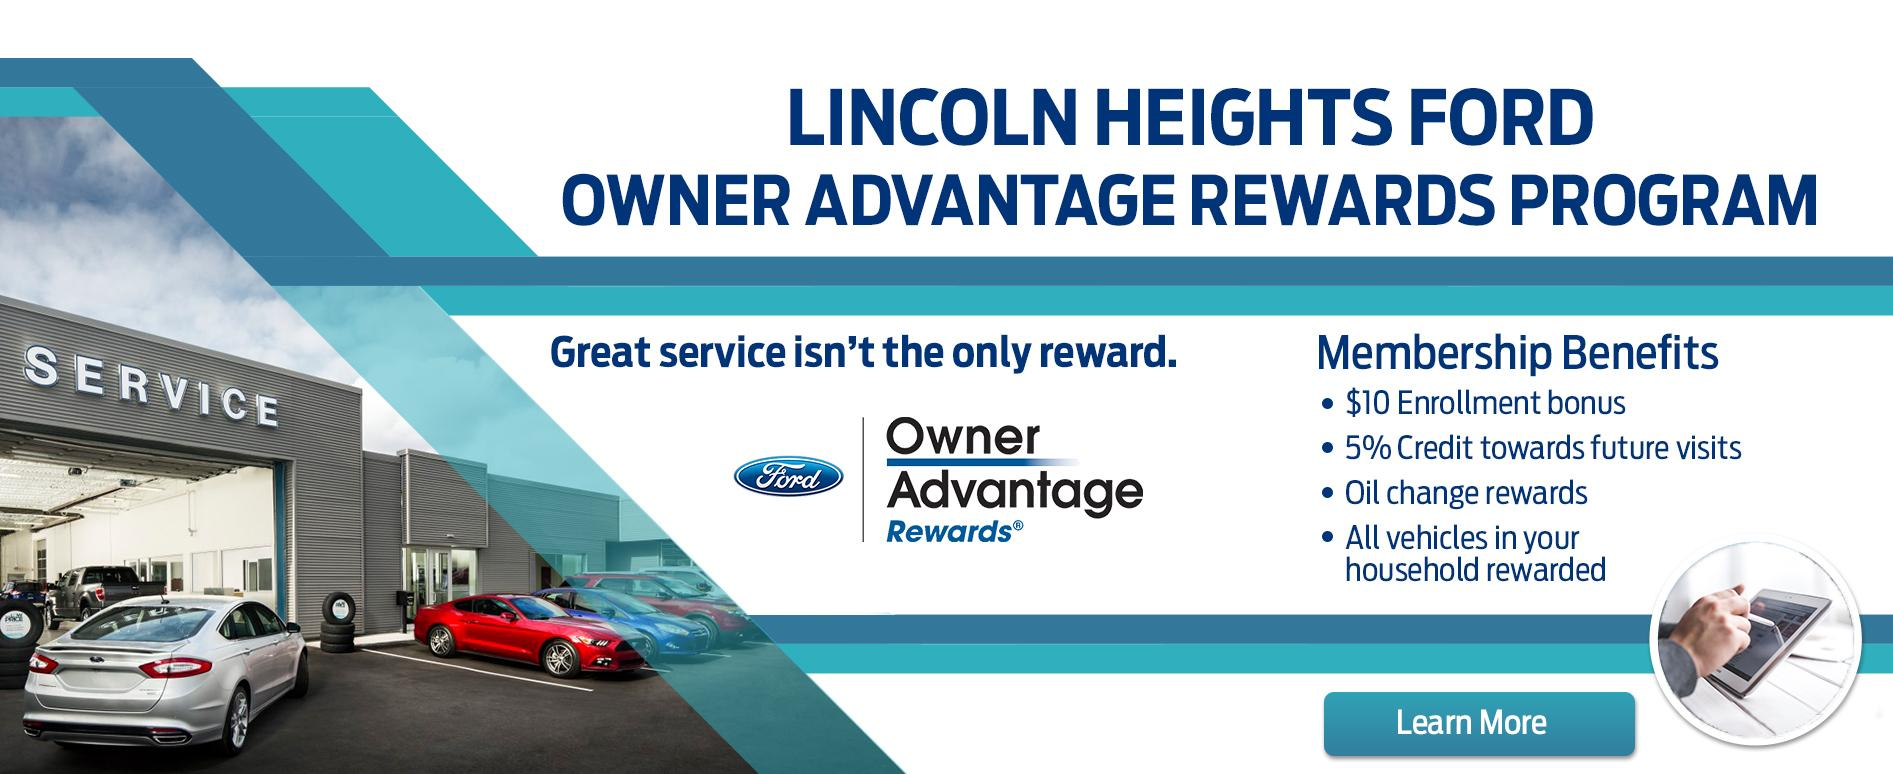 Lincoln Heights Ford Owner Advantage Rewards Program in Ottawa Ontario